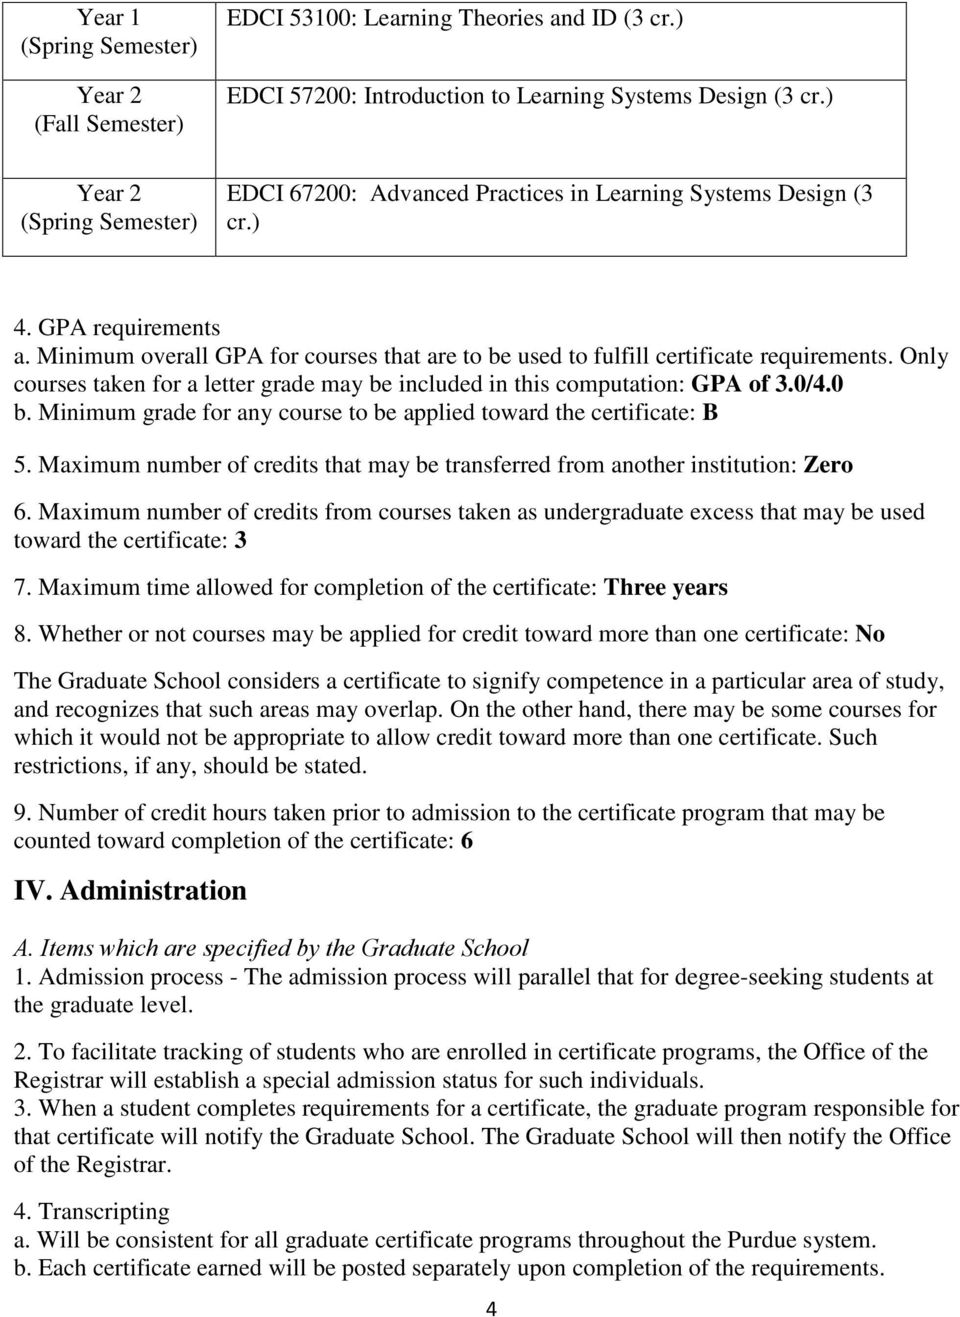 Minimum overall GPA for courses that are to be used to fulfill certificate requirements. Only courses taken for a letter grade may be included in this computation: GPA of 3.0/4.0 b.